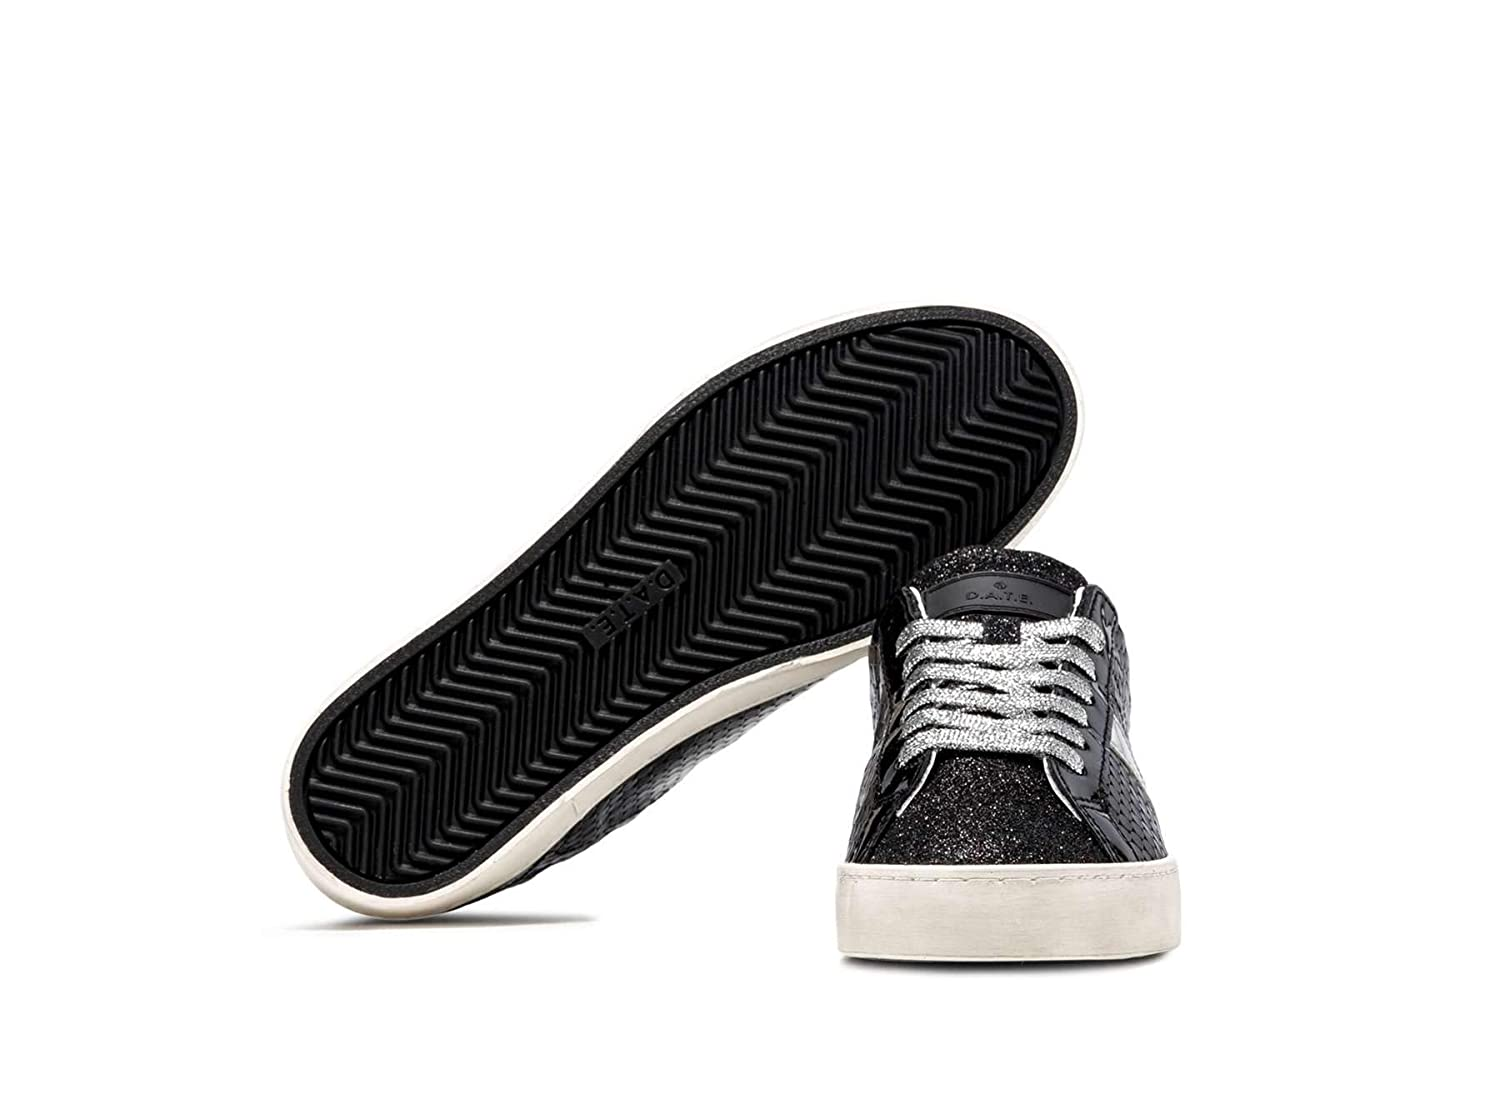 Sneakers Hill Black e a t Pelle In Nero D Donna Pong Low Scarpa OqzfTxIw